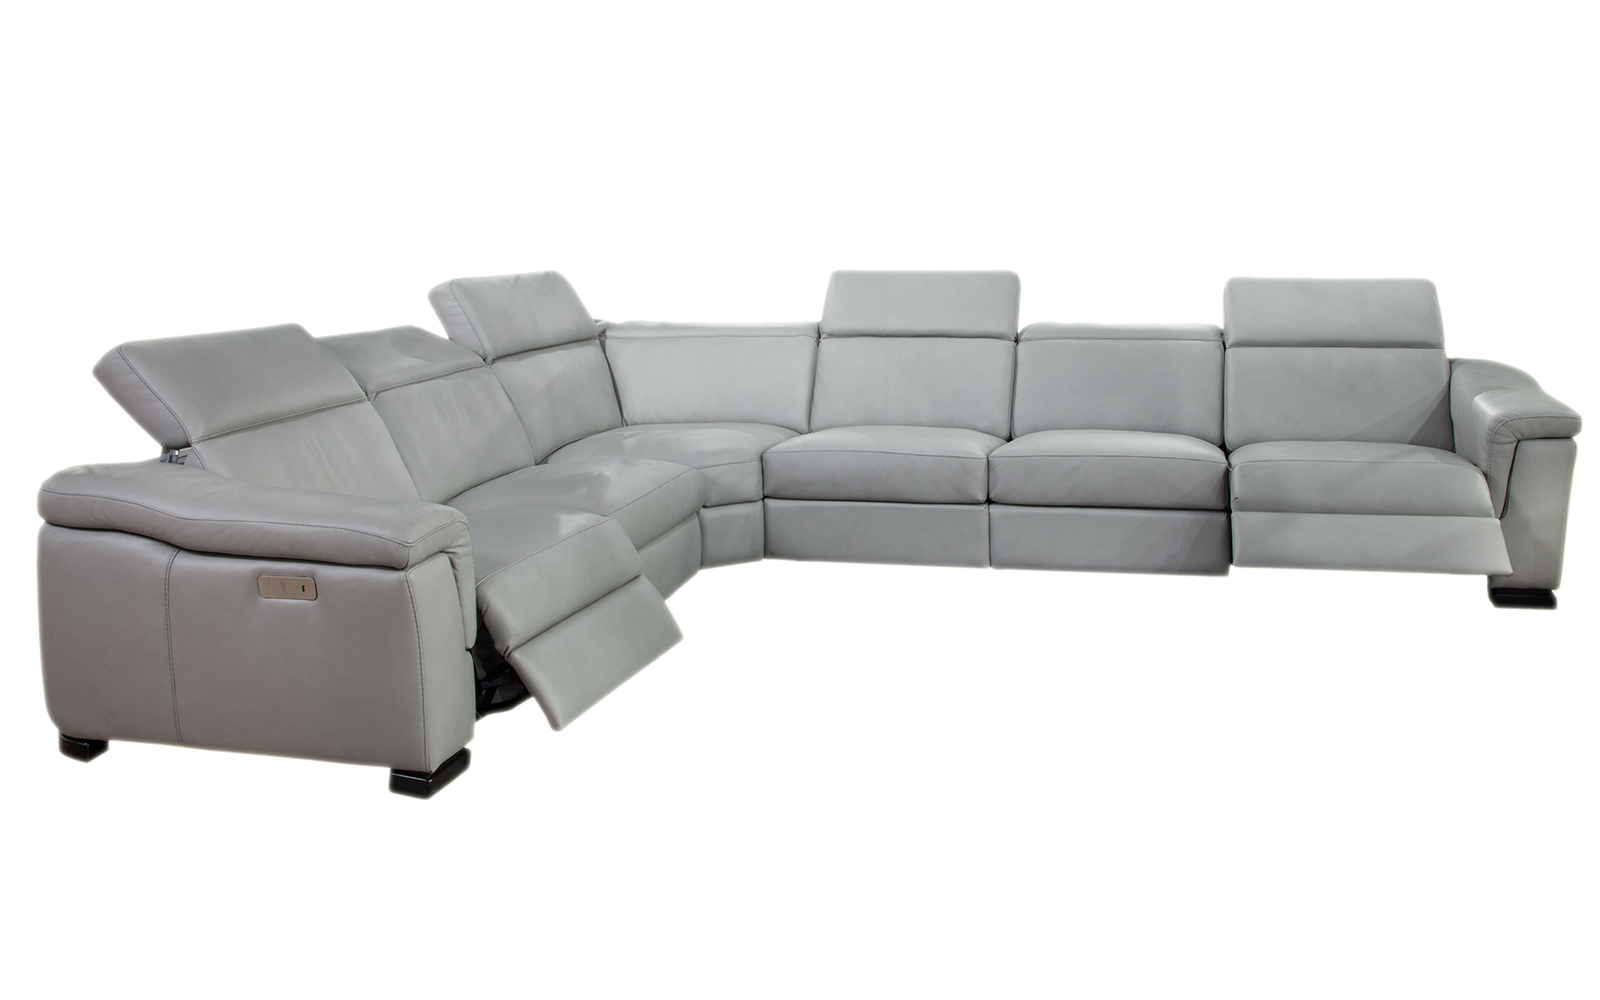 Bergamo Ponza 24 28 32 Reclining Sofa Available Arizona